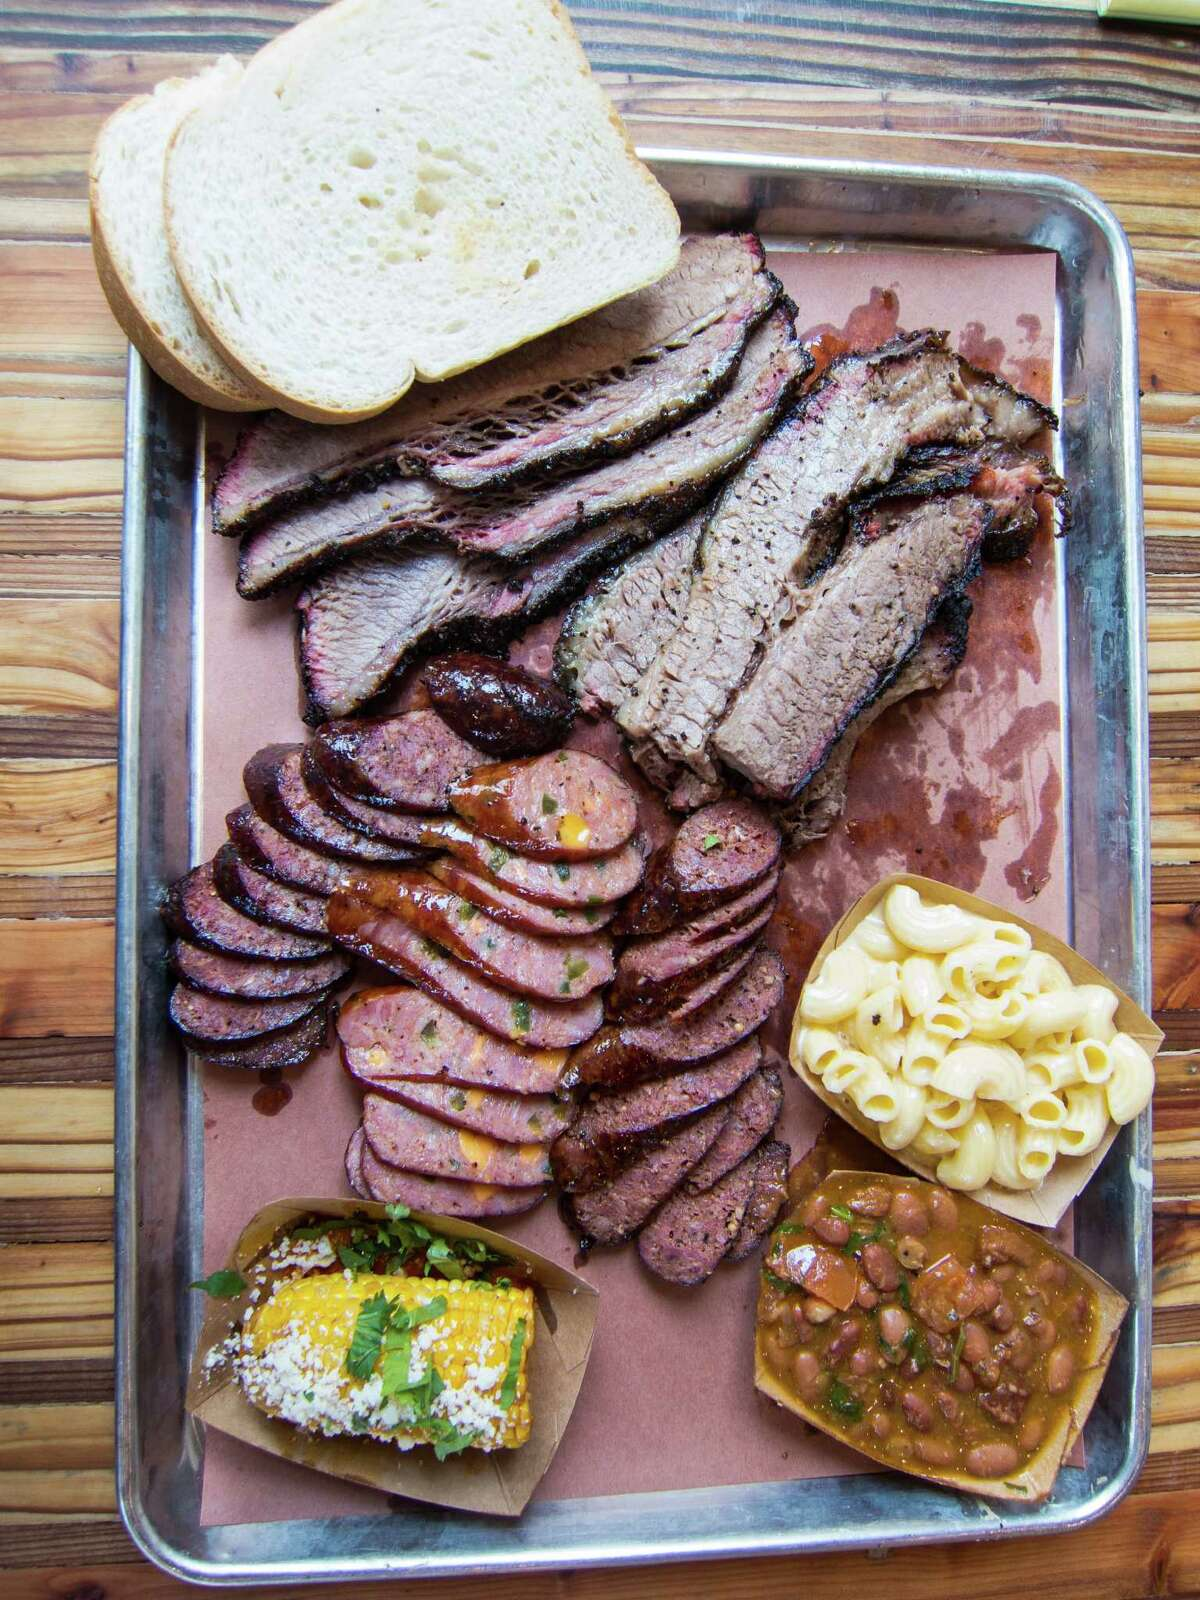 Brisket and sausage with macaroni and cheese, beans and elote (corn) at The Pit Room